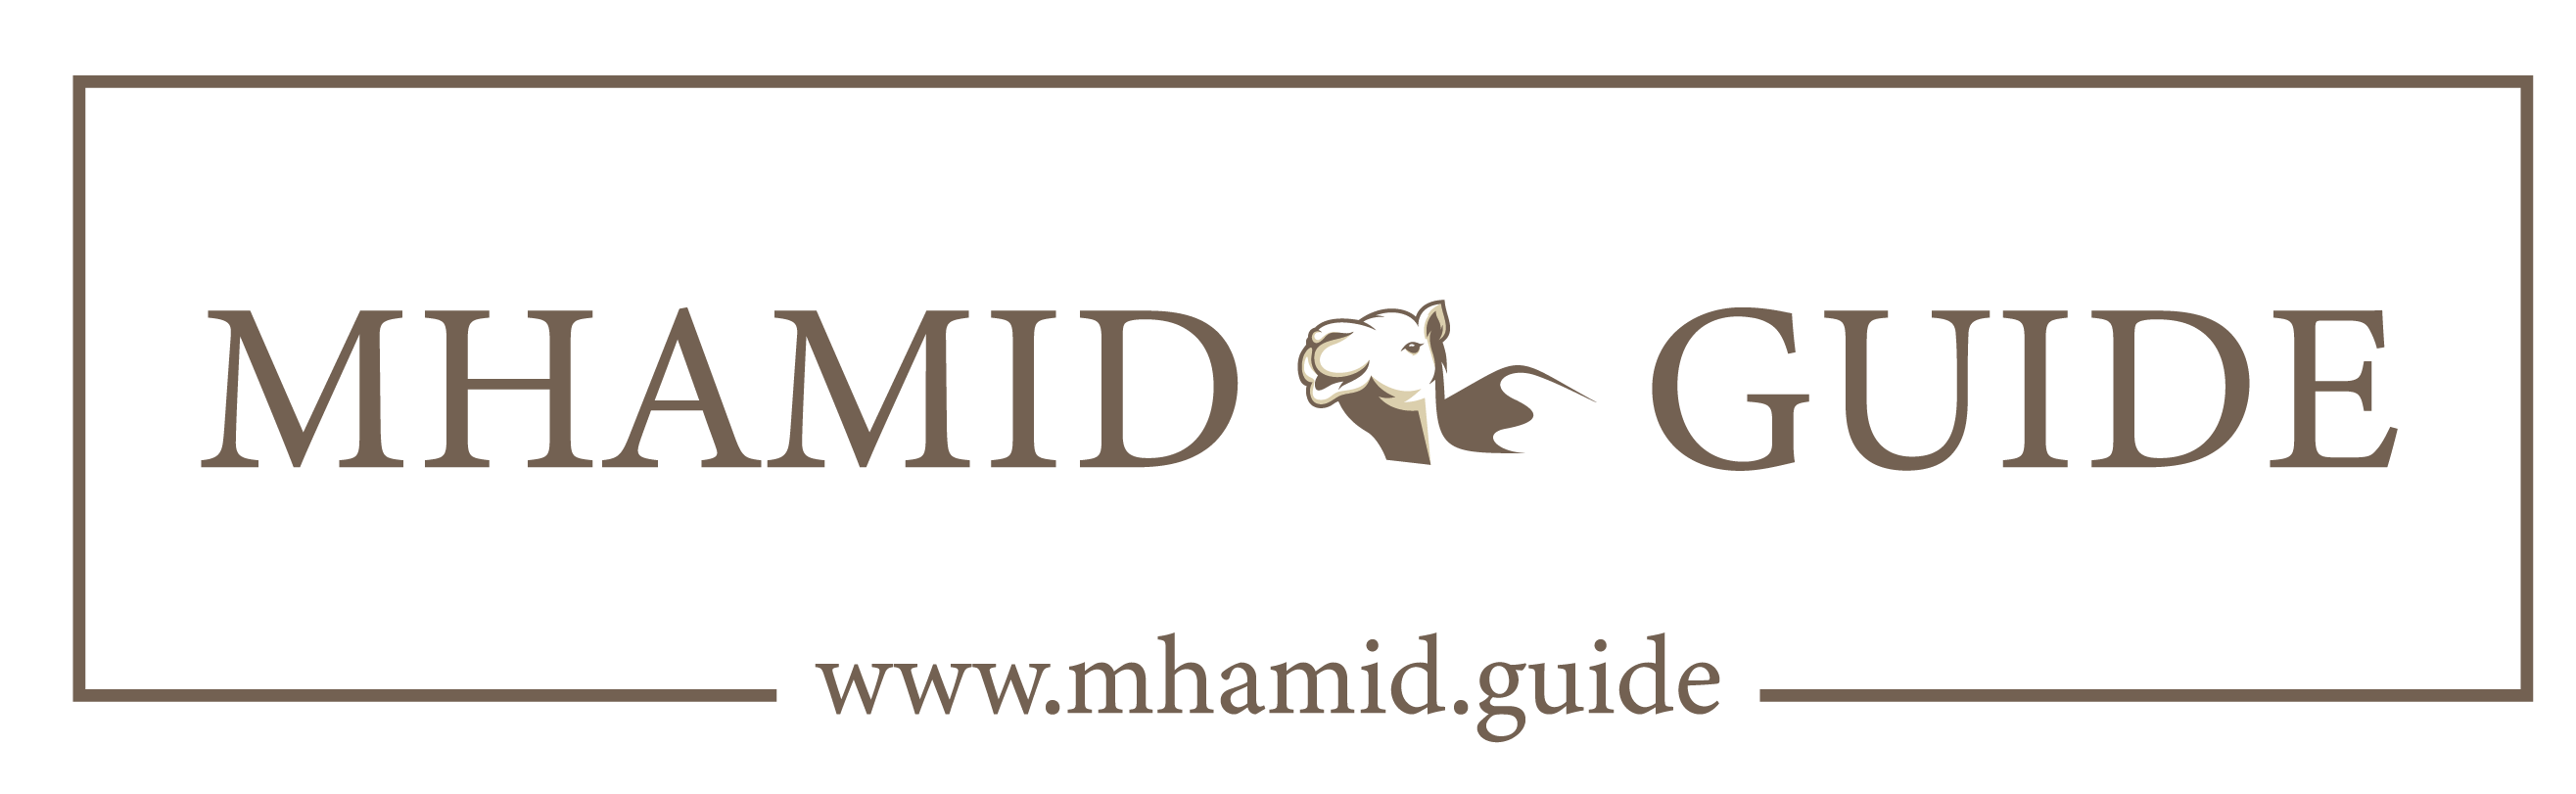 Mhamid Guide